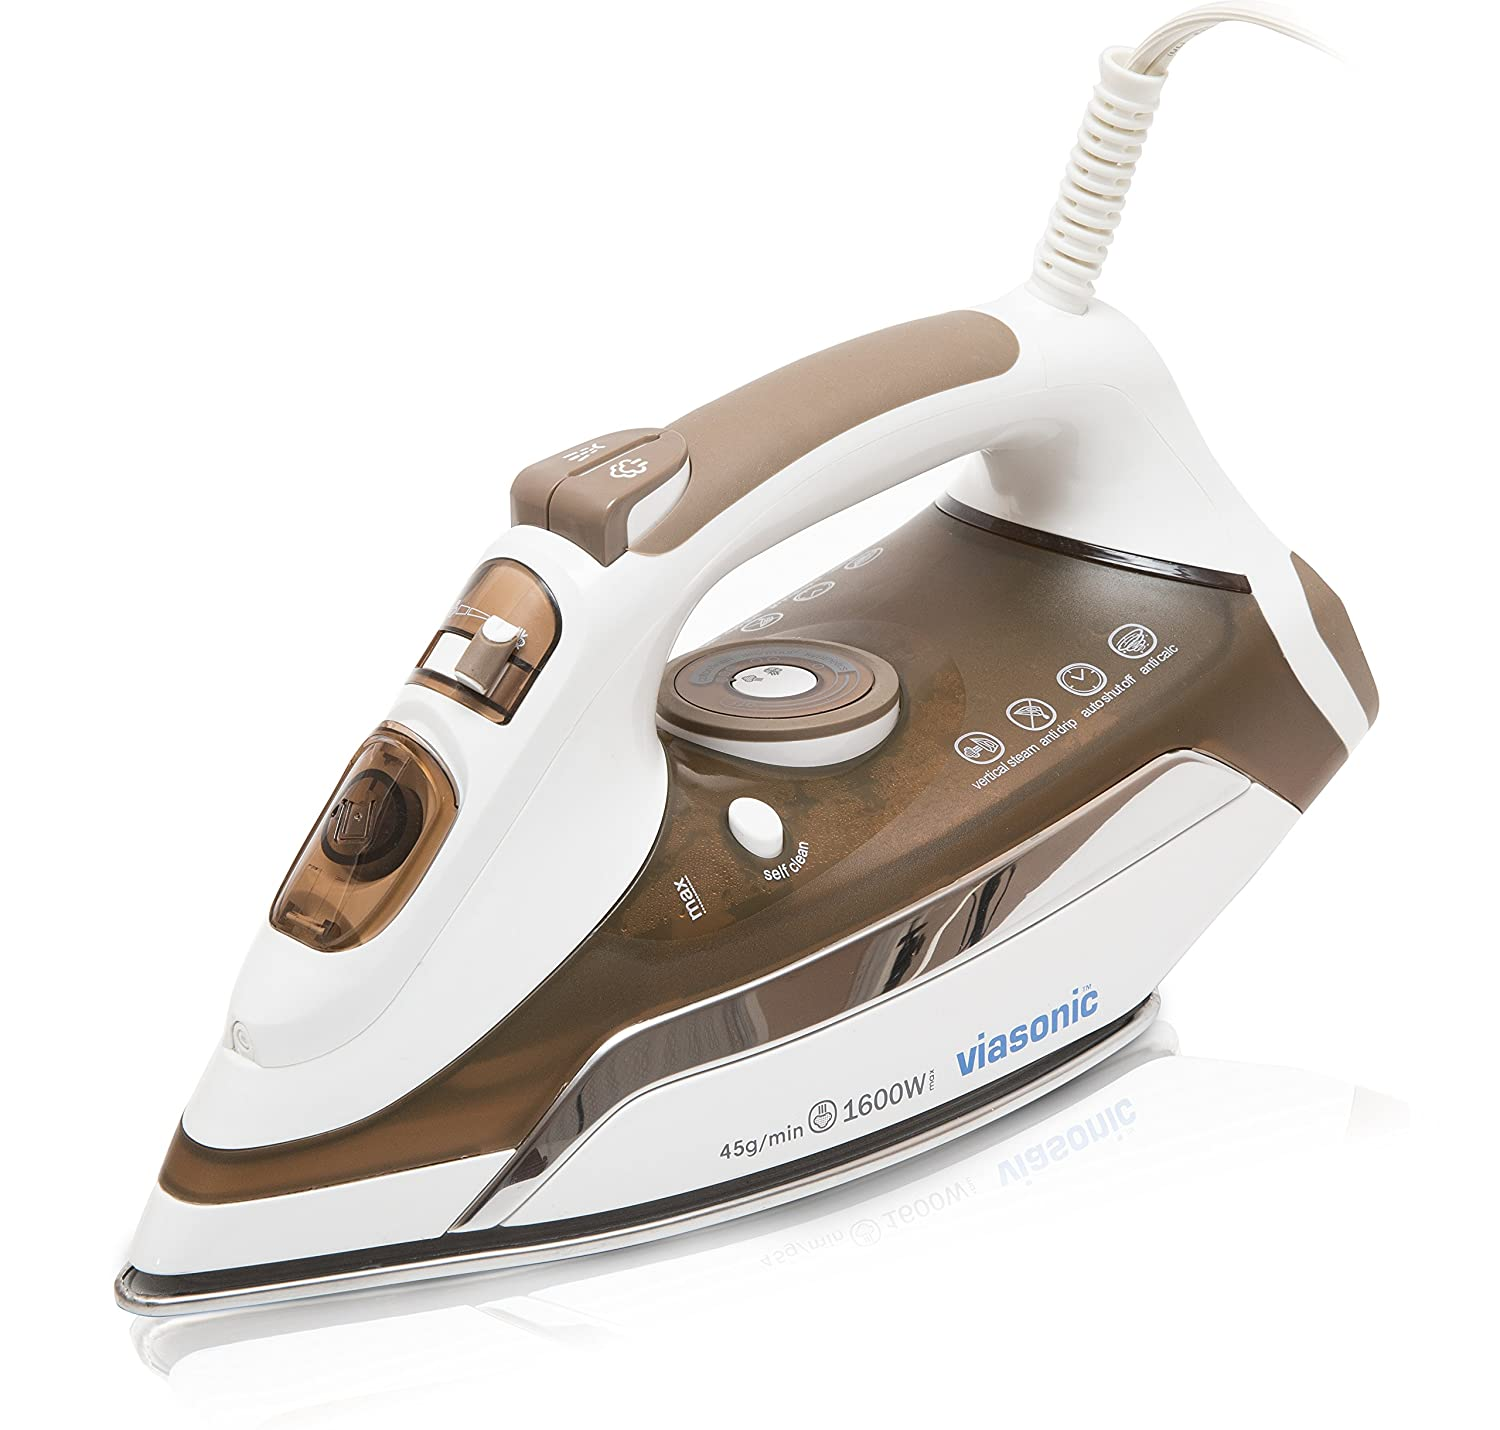 Viasonic Executive Steam Iron 1600W, Auto-Off - Anti-Drip & Self-Cleaning, Anti-Calcium, Vertical Steam, Stainless Steel Soleplate, XL 350ML Tank - Steam, Spray, Dry Functions - ETL Listed, by Unity